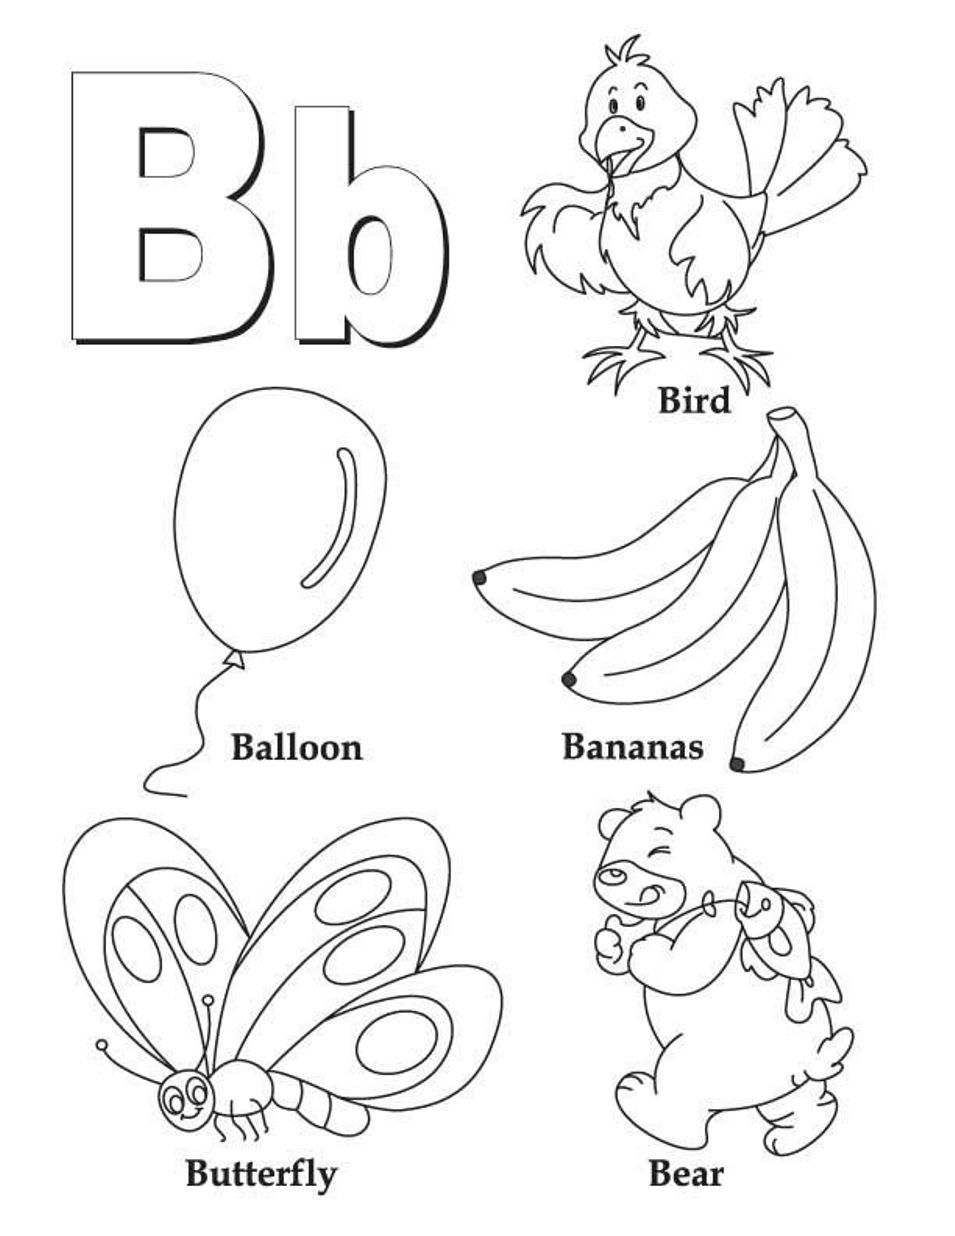 Letter B Coloring Pages Beautiful Letter B Sheets For Preschoolers Coloring Pages Abc Coloring Pages Alphabet Coloring Pages Abc Coloring